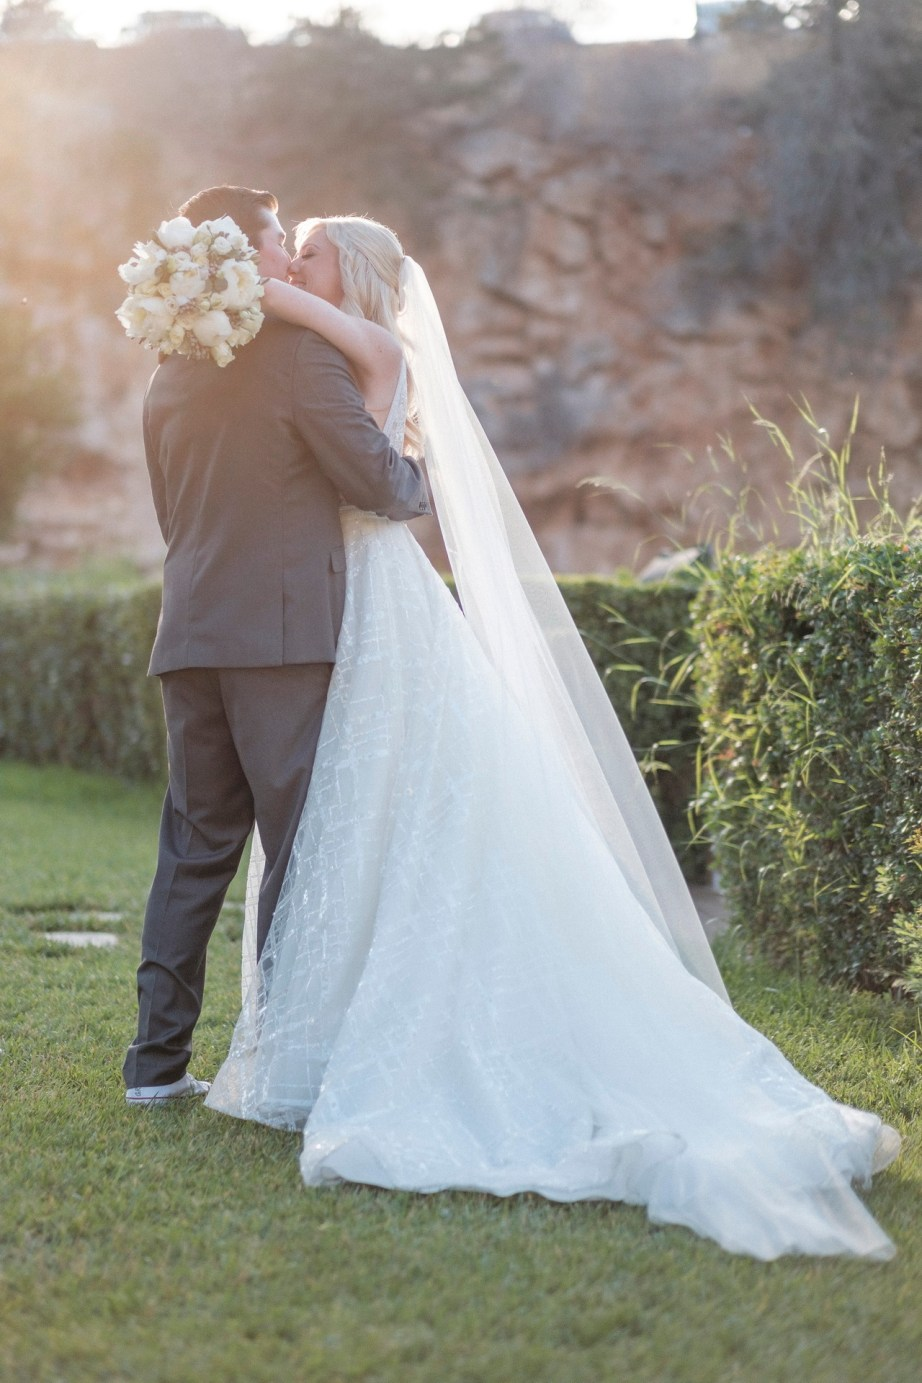 Lake_vouliagmeni_greece_weddings_nicole_caldwell_53